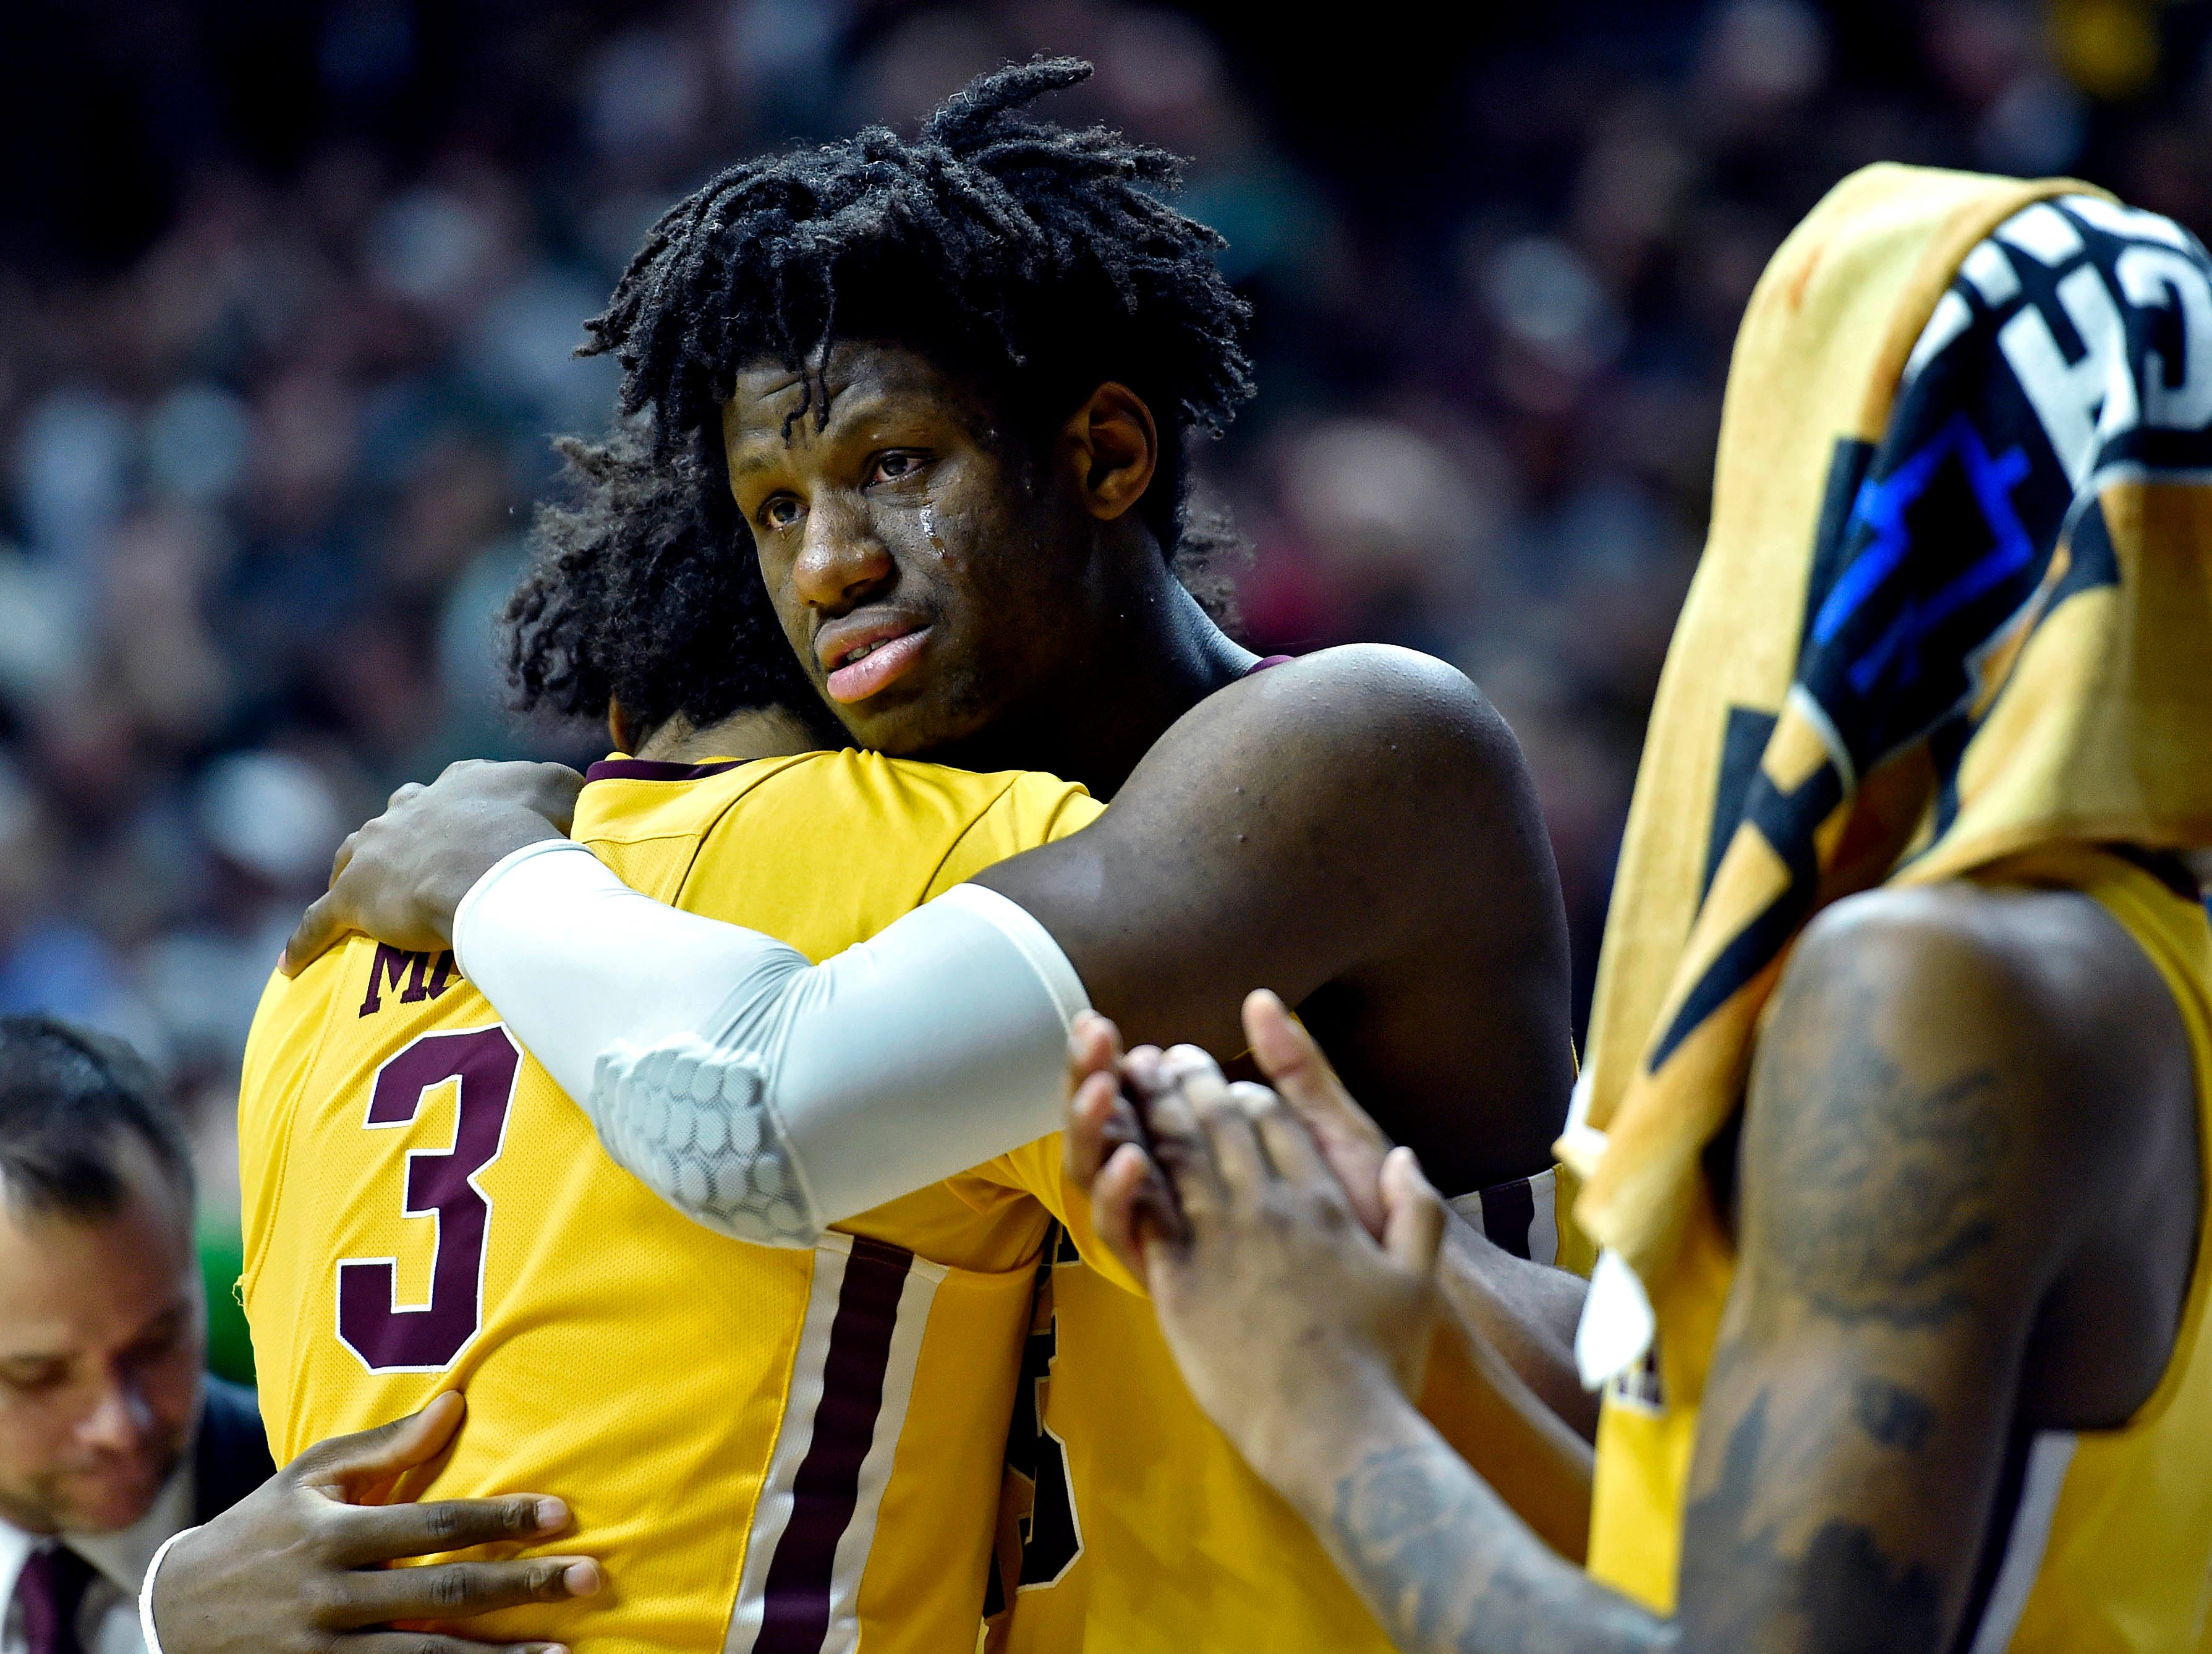 Mar 23, 2019; Des Moines, IA, United States; Minnesota Golden Gophers forward Jordan Murphy (3) hugs center Daniel Oturu (25) during the second half against the Michigan State Spartans in the second round of the 2019 NCAA Tournament at Wells Fargo Arena. Mandatory Credit: Jeffrey Becker-USA TODAY Sports